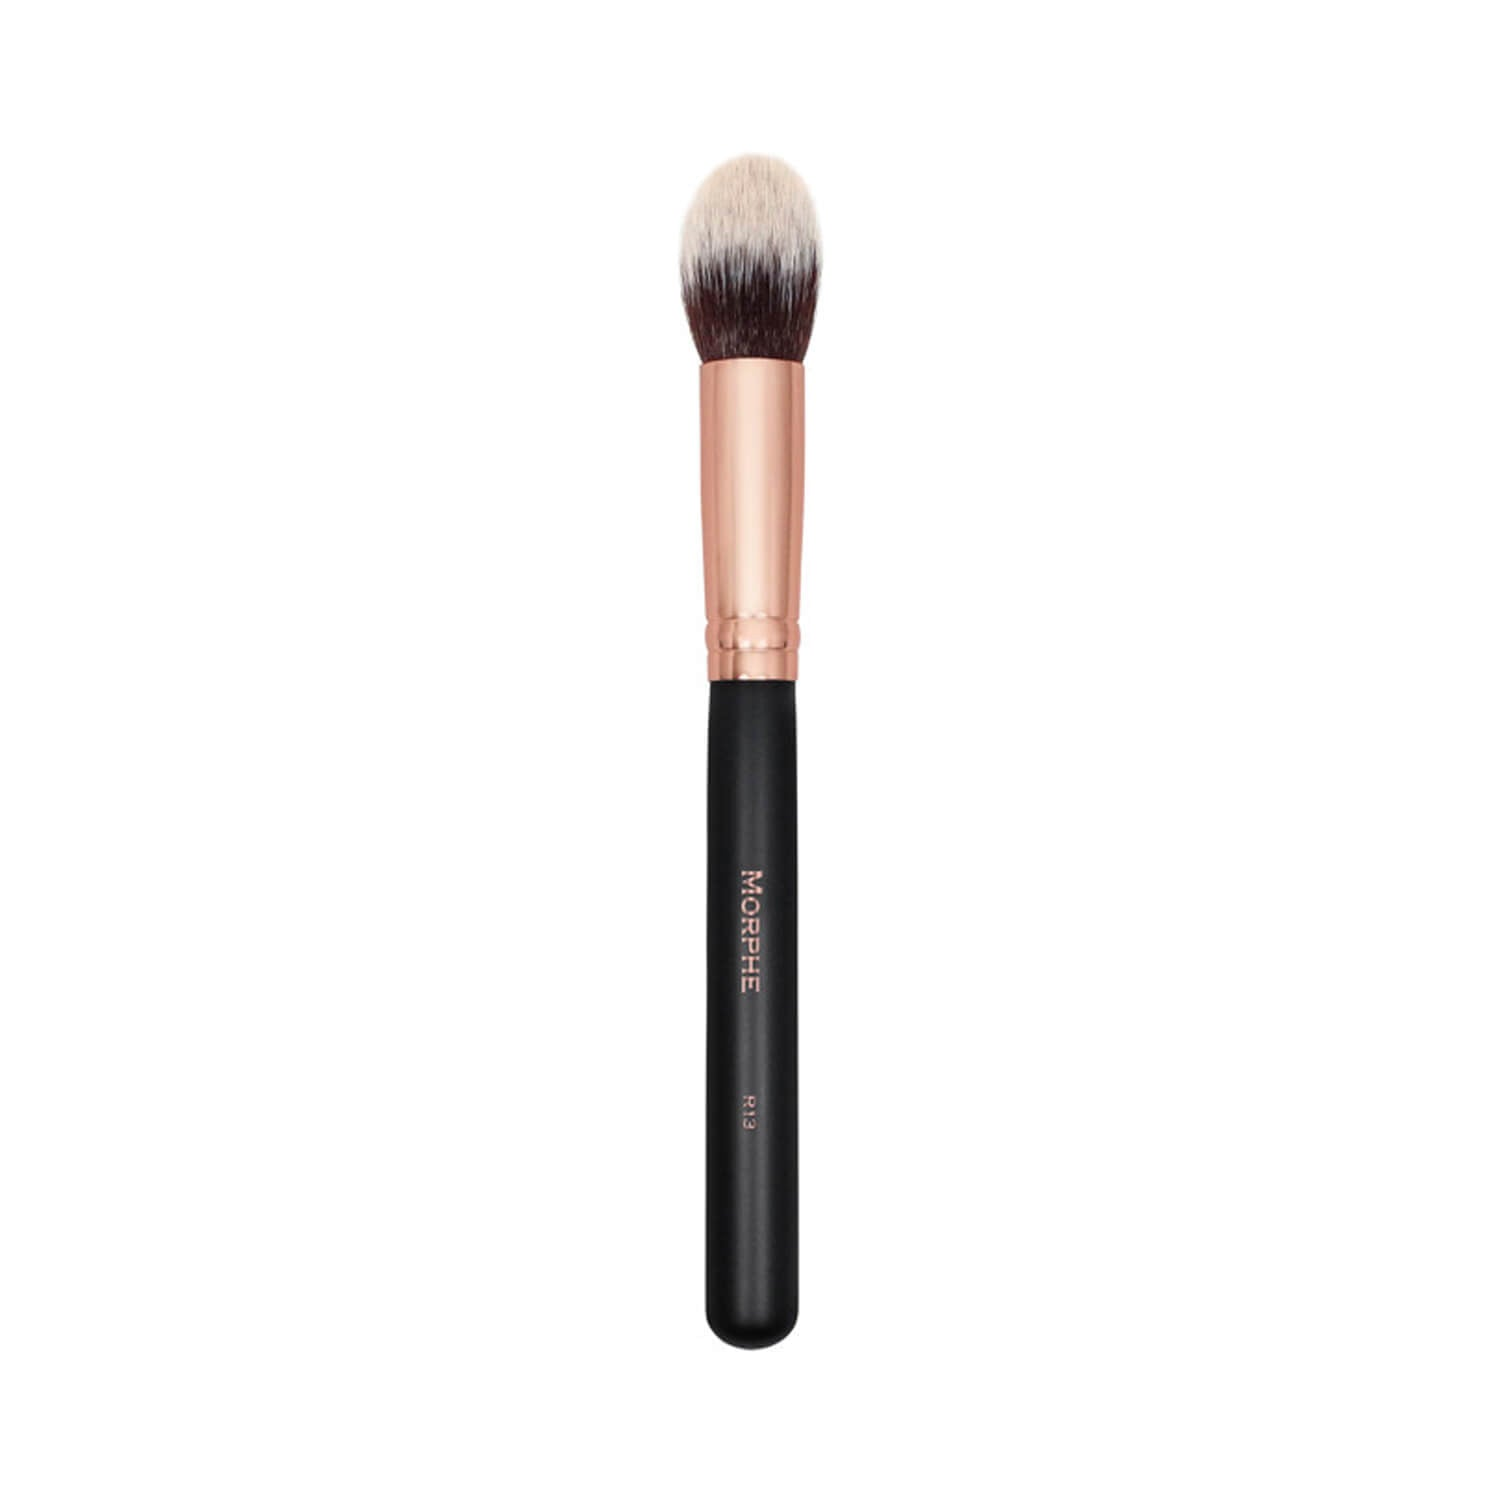 Morphe Cosmetics R13 Pointed Contour Brush